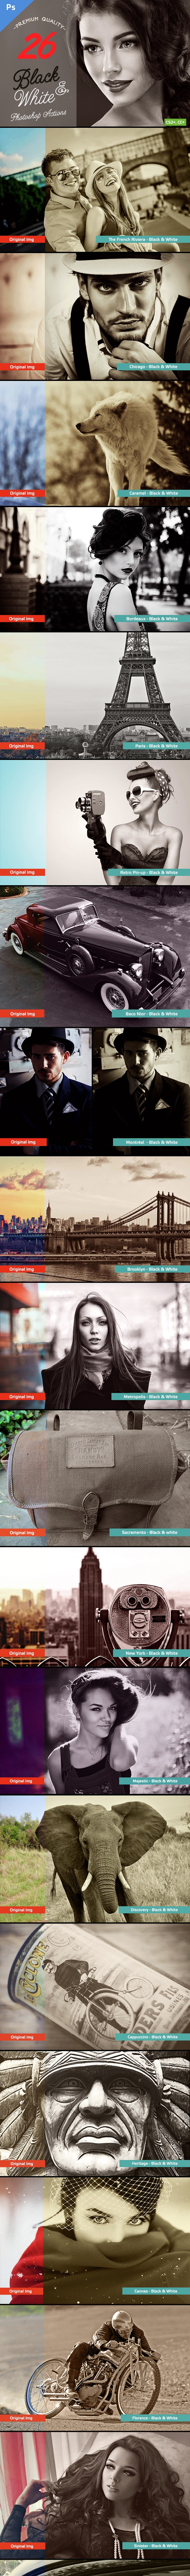 26 Black & White Adobe Photoshop Actions - Actions Photoshop